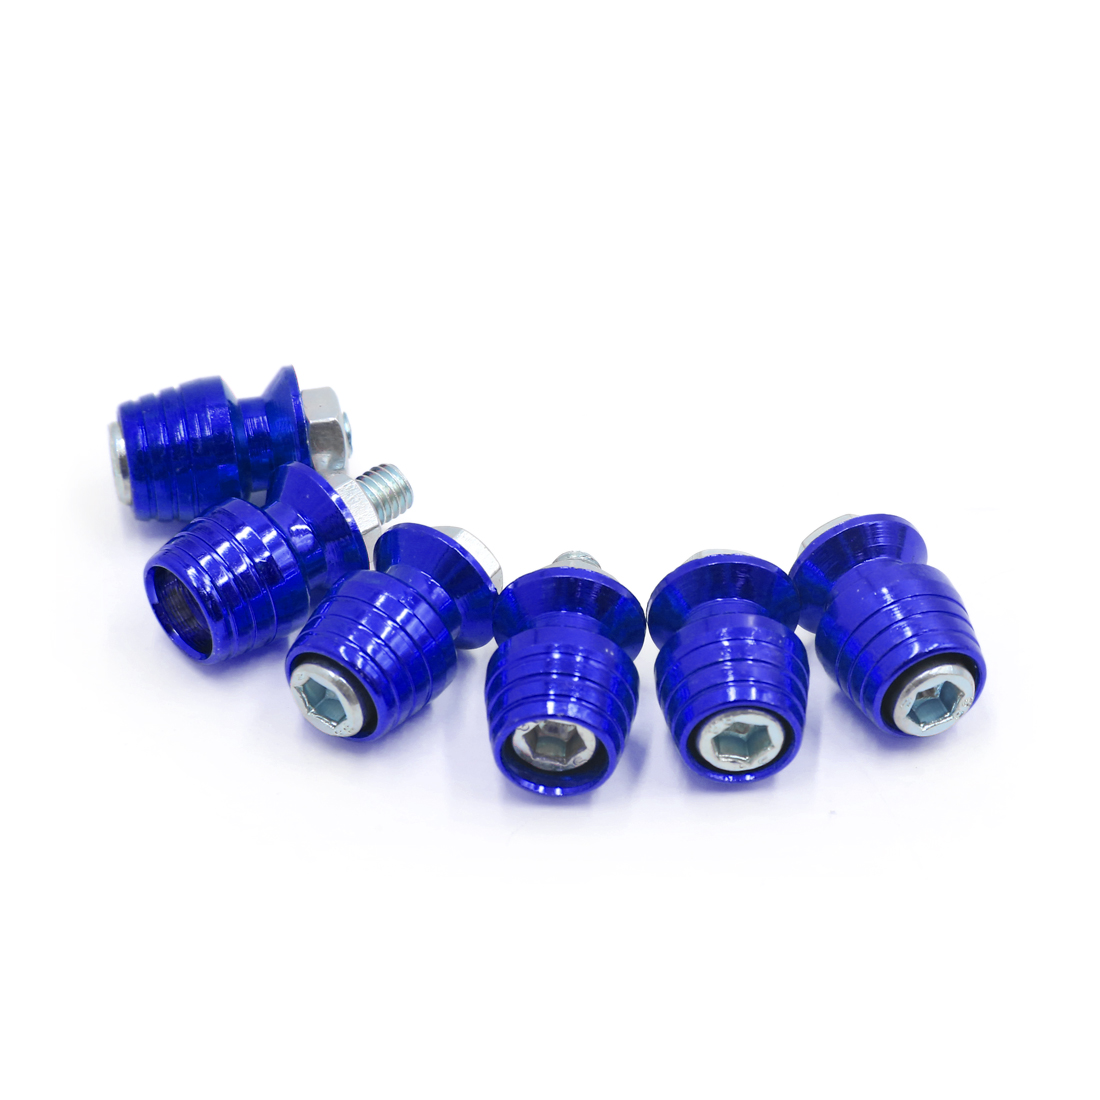 6Pcs Universal Blue Metal Conversion License Plate Bolt Screw for Motorcycle